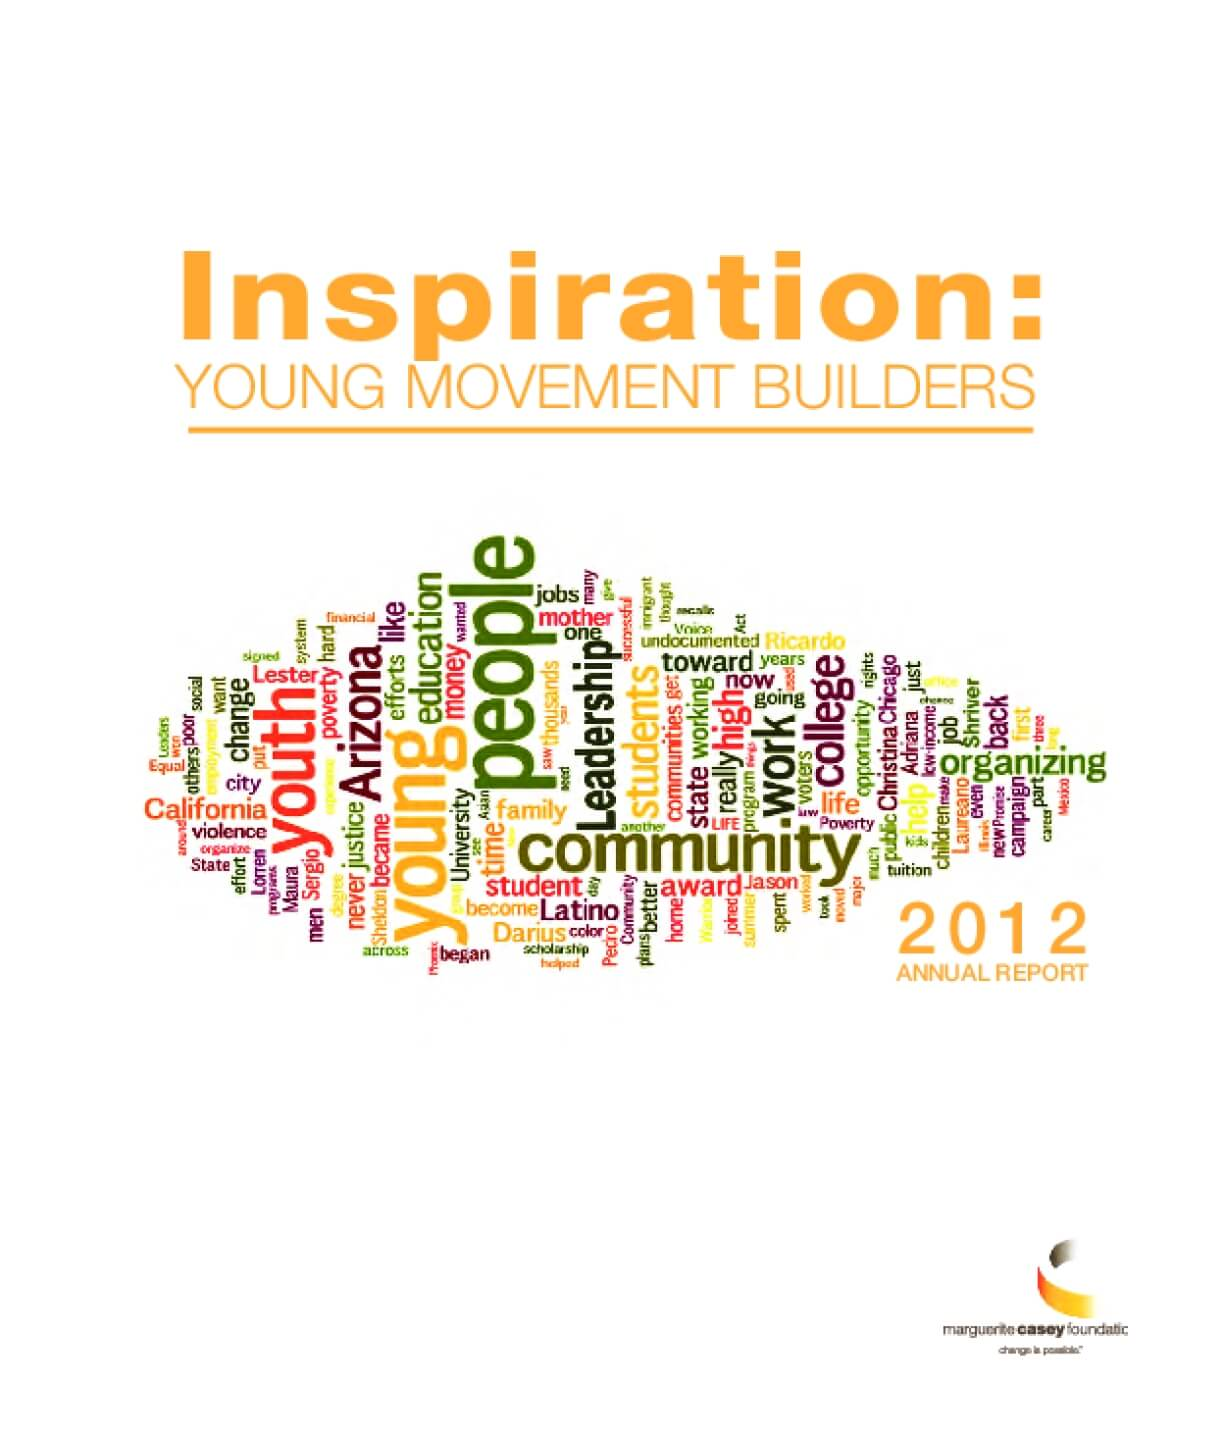 2012 Marguerite Casey Foundation Annual Report: Young Movement Builders